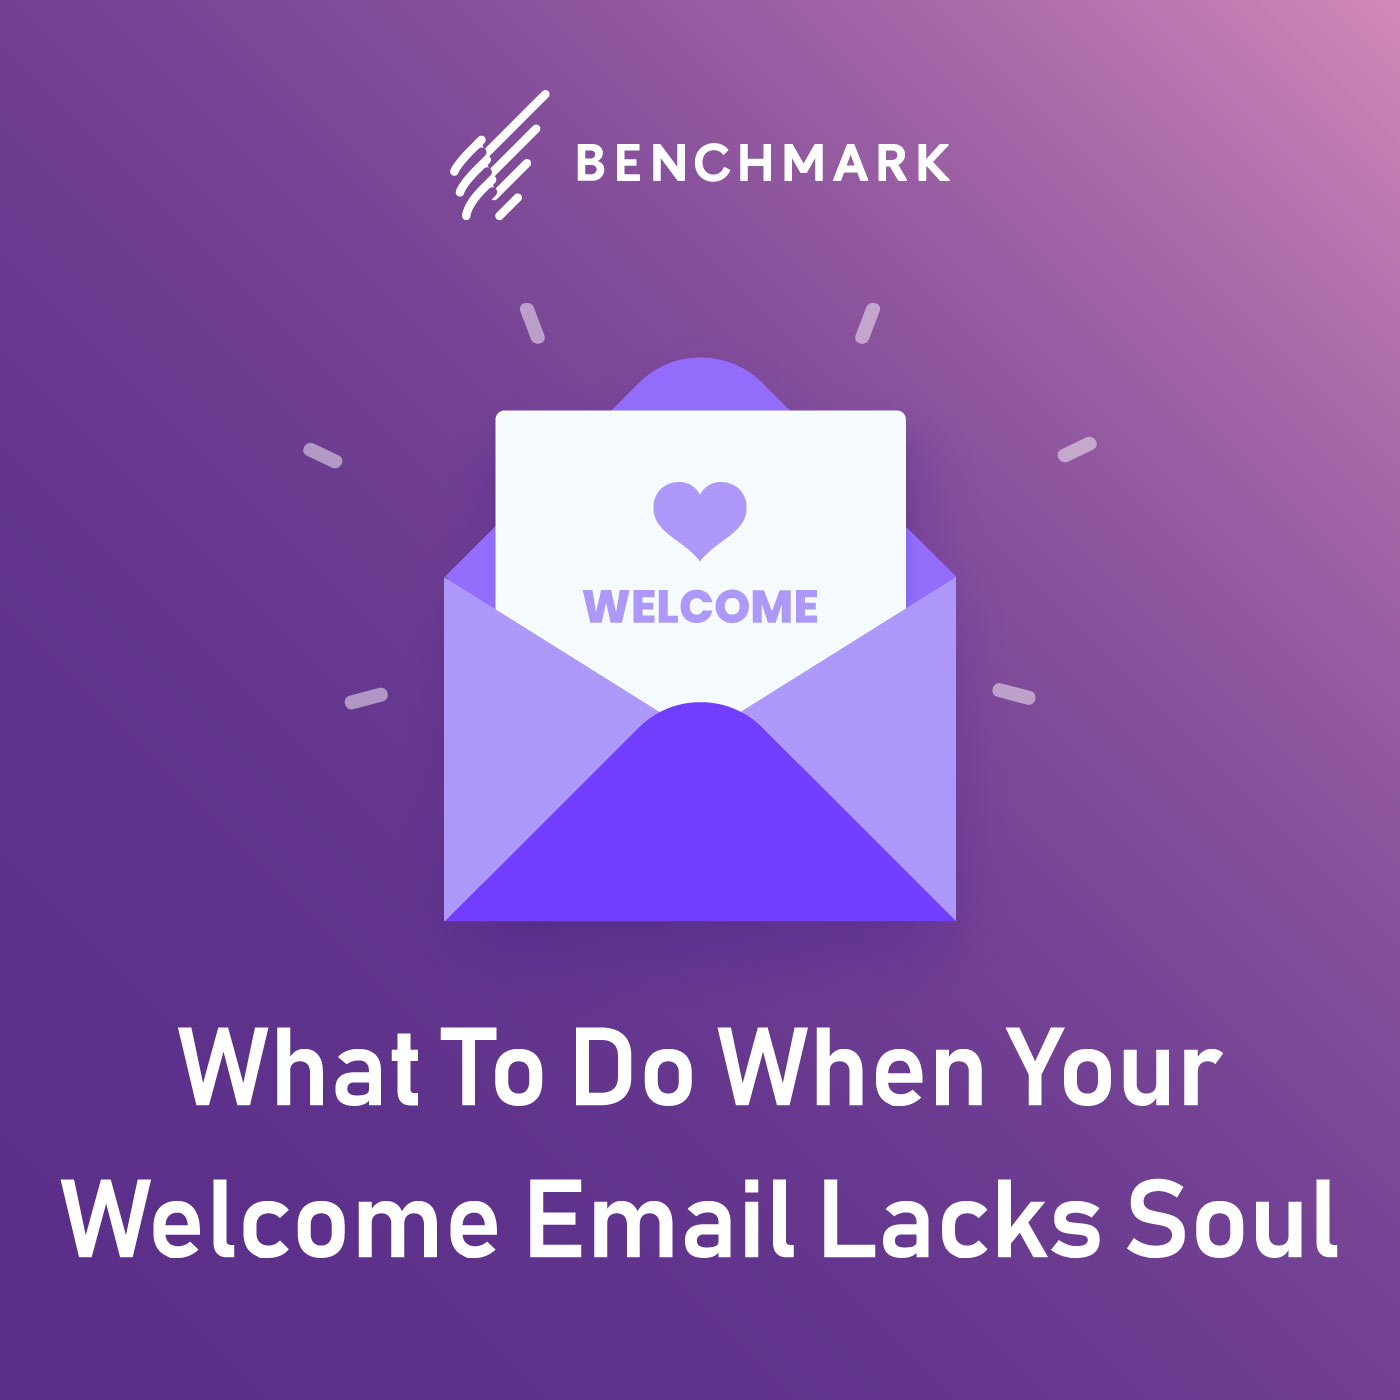 What To Do When Your Welcome Email Lacks Soul